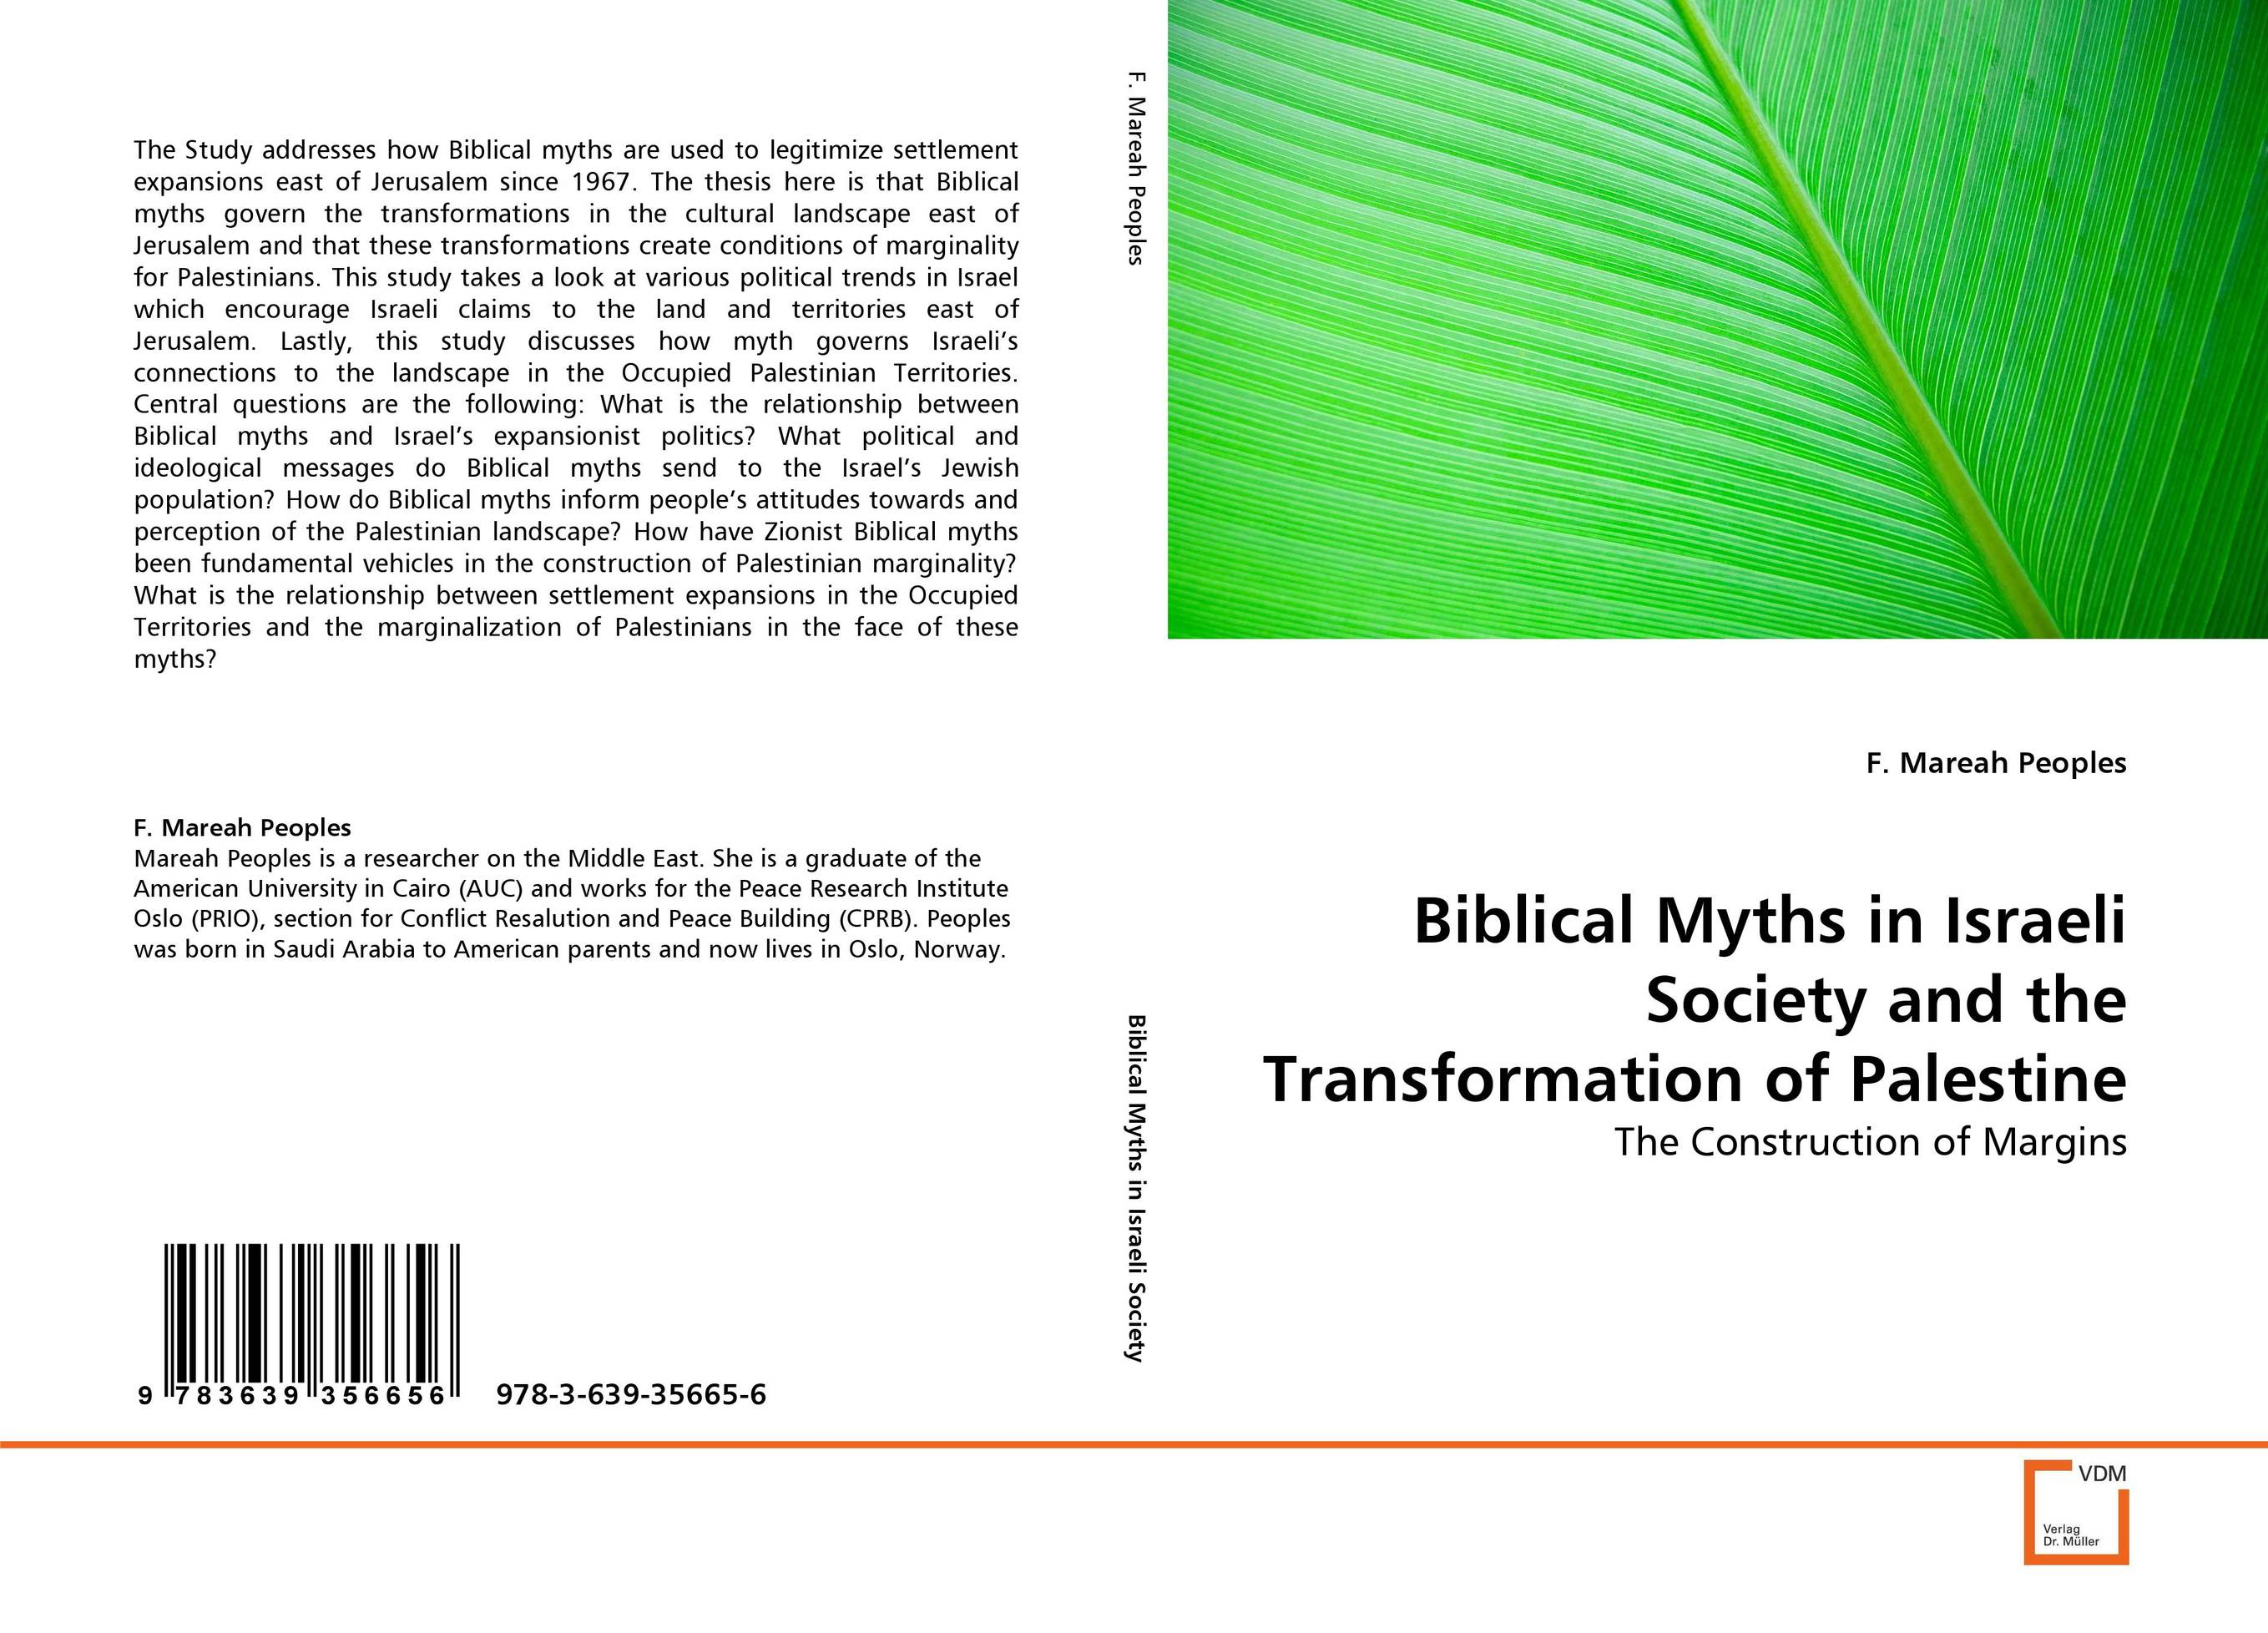 Biblical Myths in Israeli Society and the Transformation of Palestine fields in vision television sport and cultural transformation communication and society